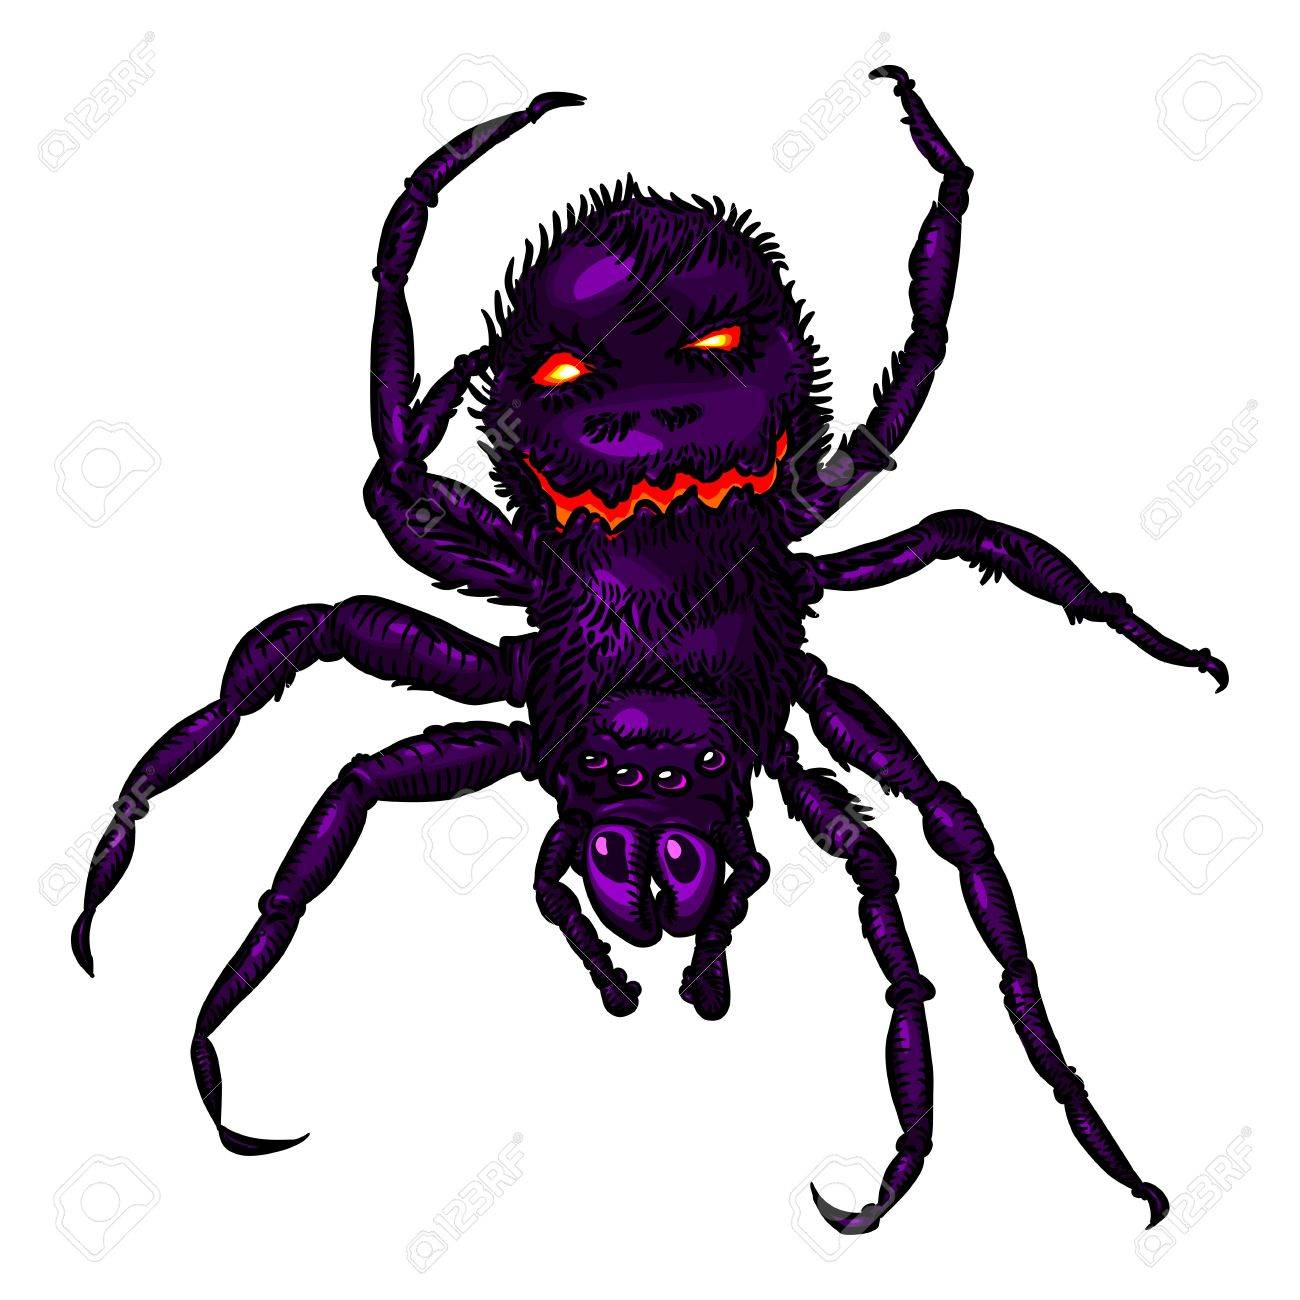 Halloween Spider Color Royalty Free Cliparts, Vectors, And Stock ...